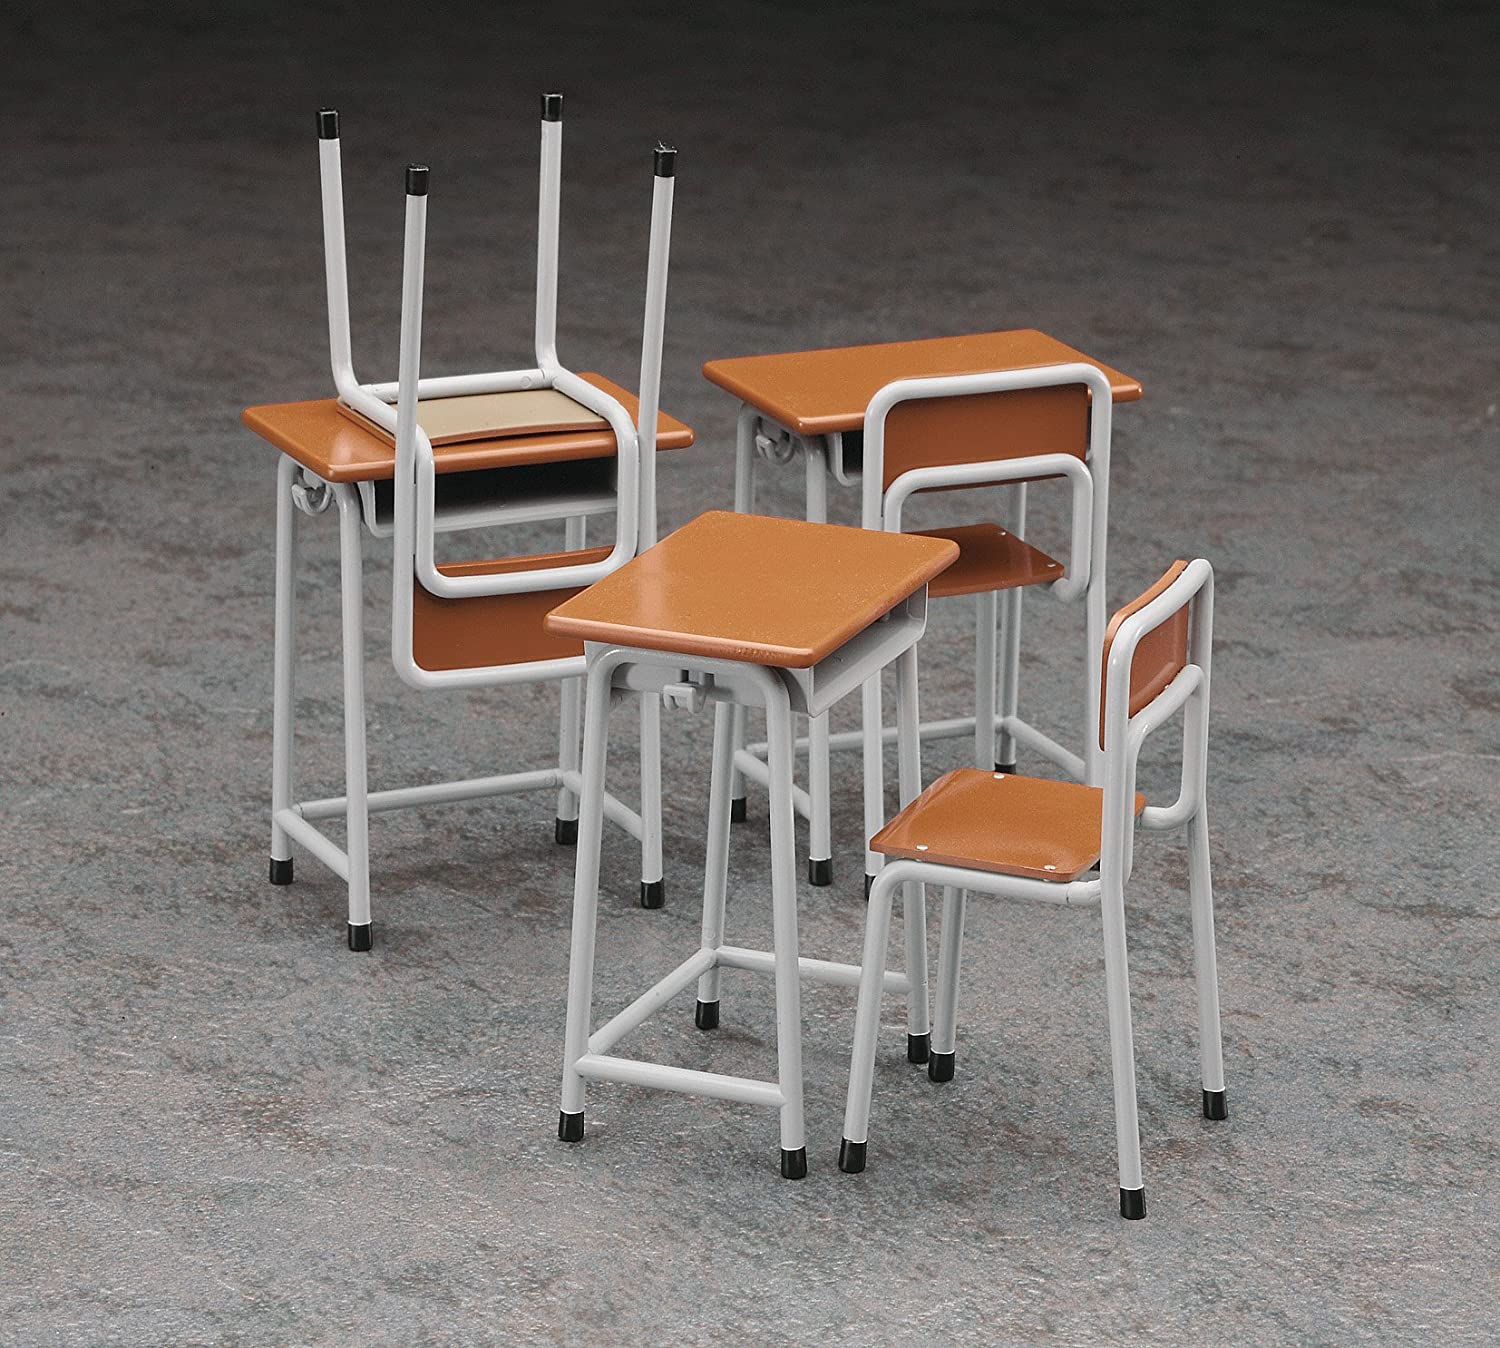 Amazon HASEGAWA 1 12 School Desk & Chair For Toy